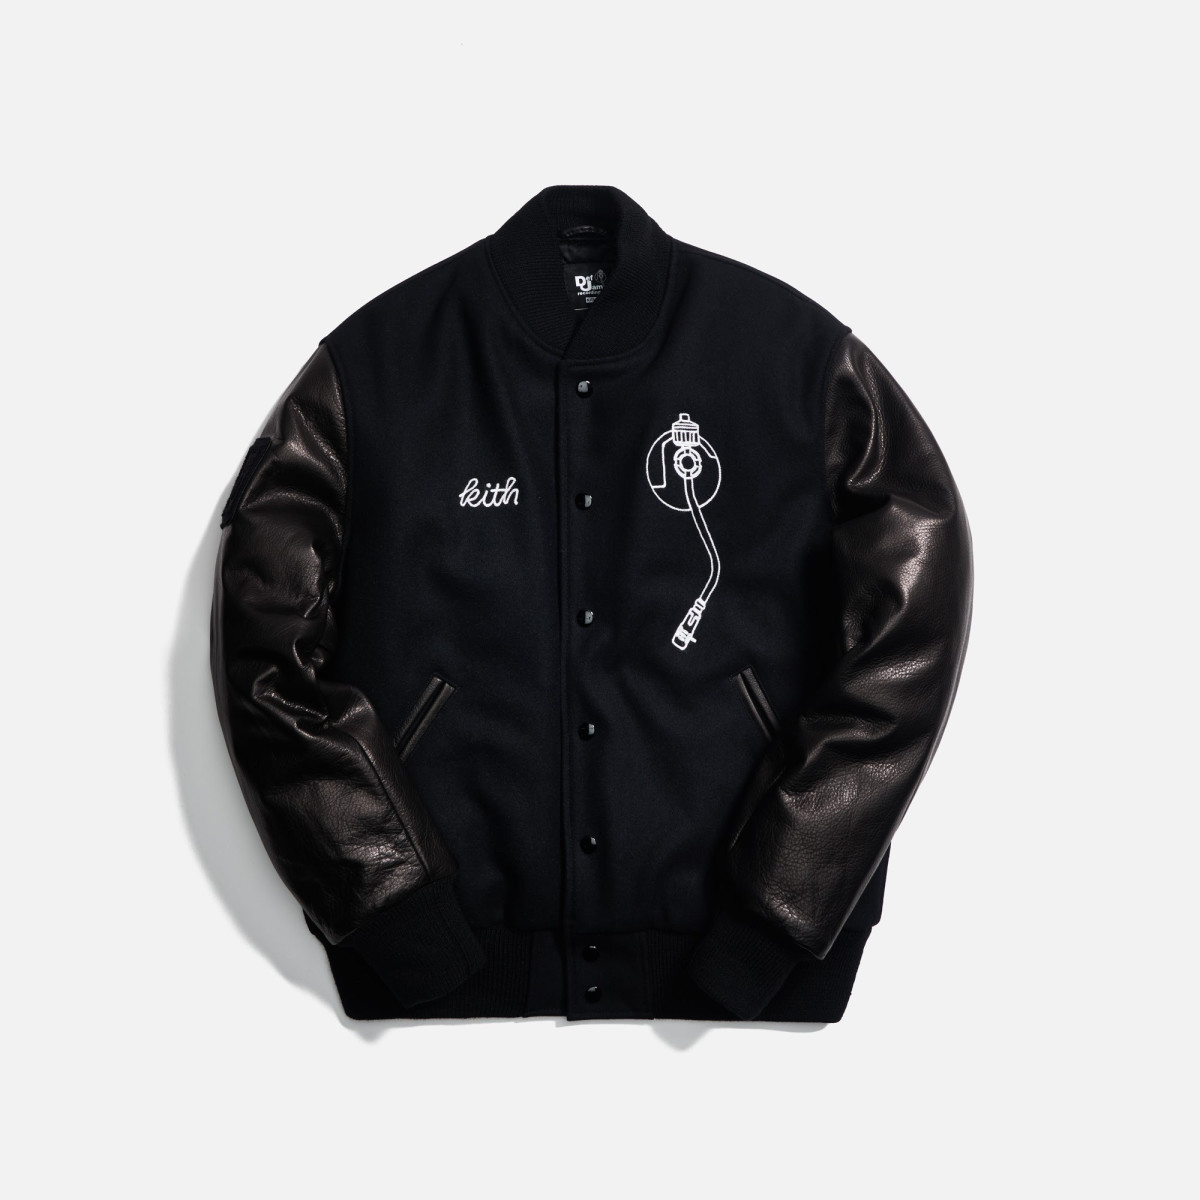 Def Jam Recordings Kith Capsule Jacket